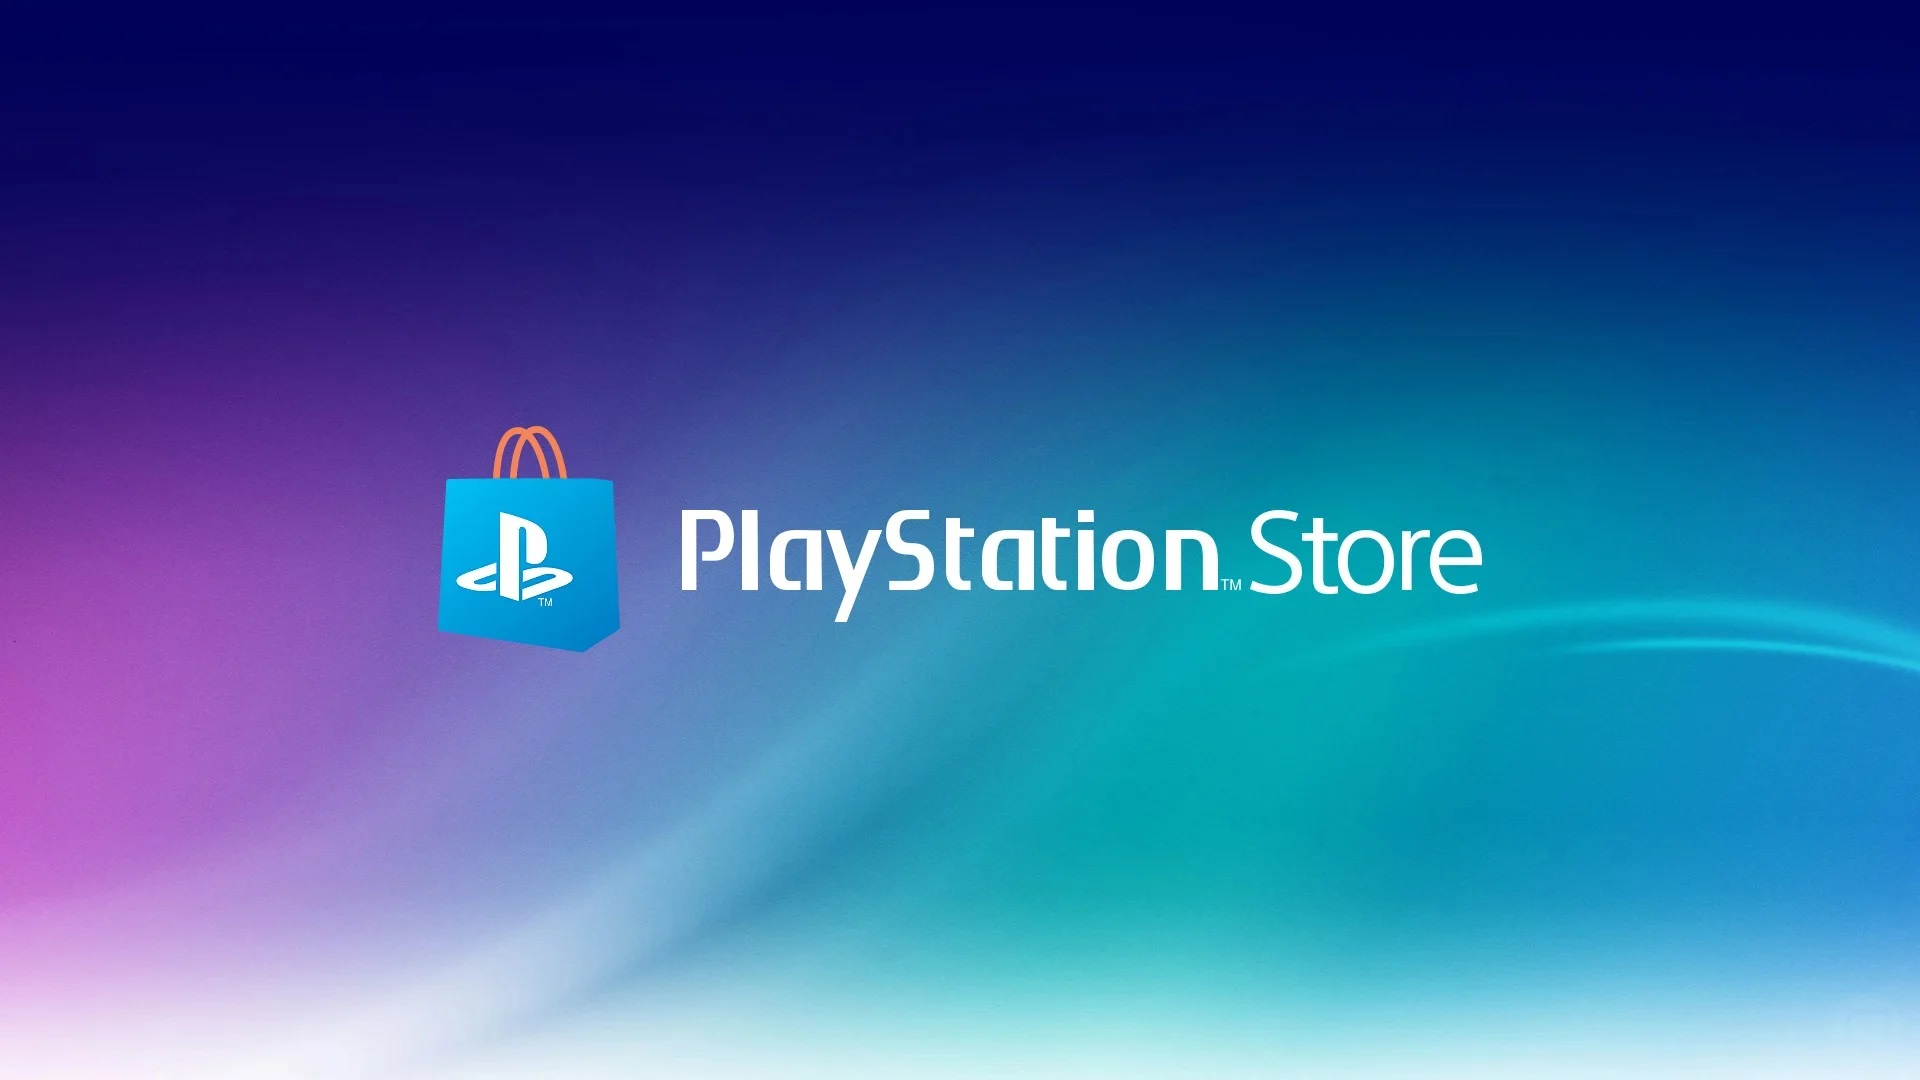 Playstation Store graphic